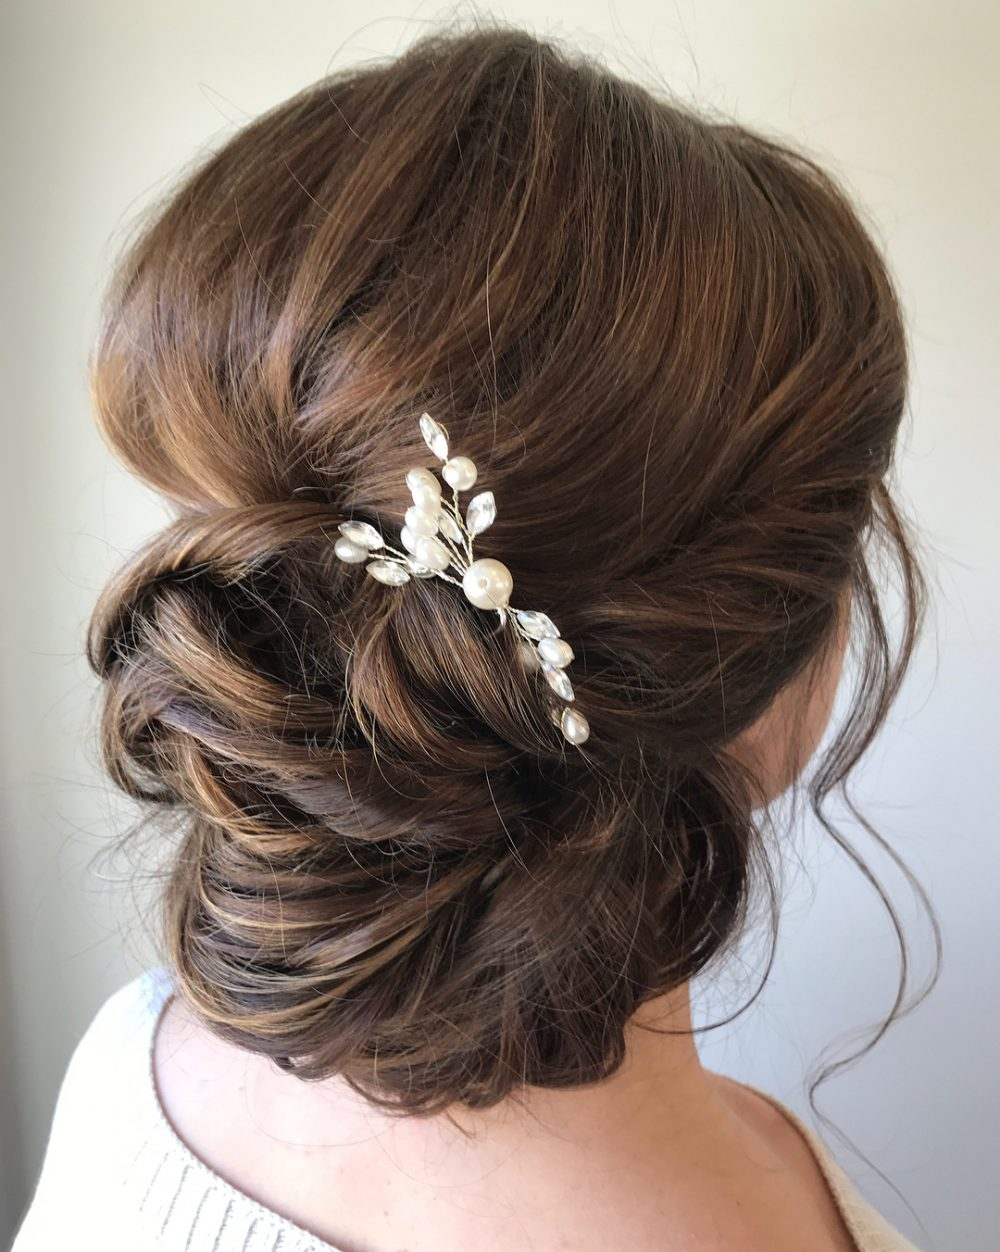 Simple & Romantic hairstyle